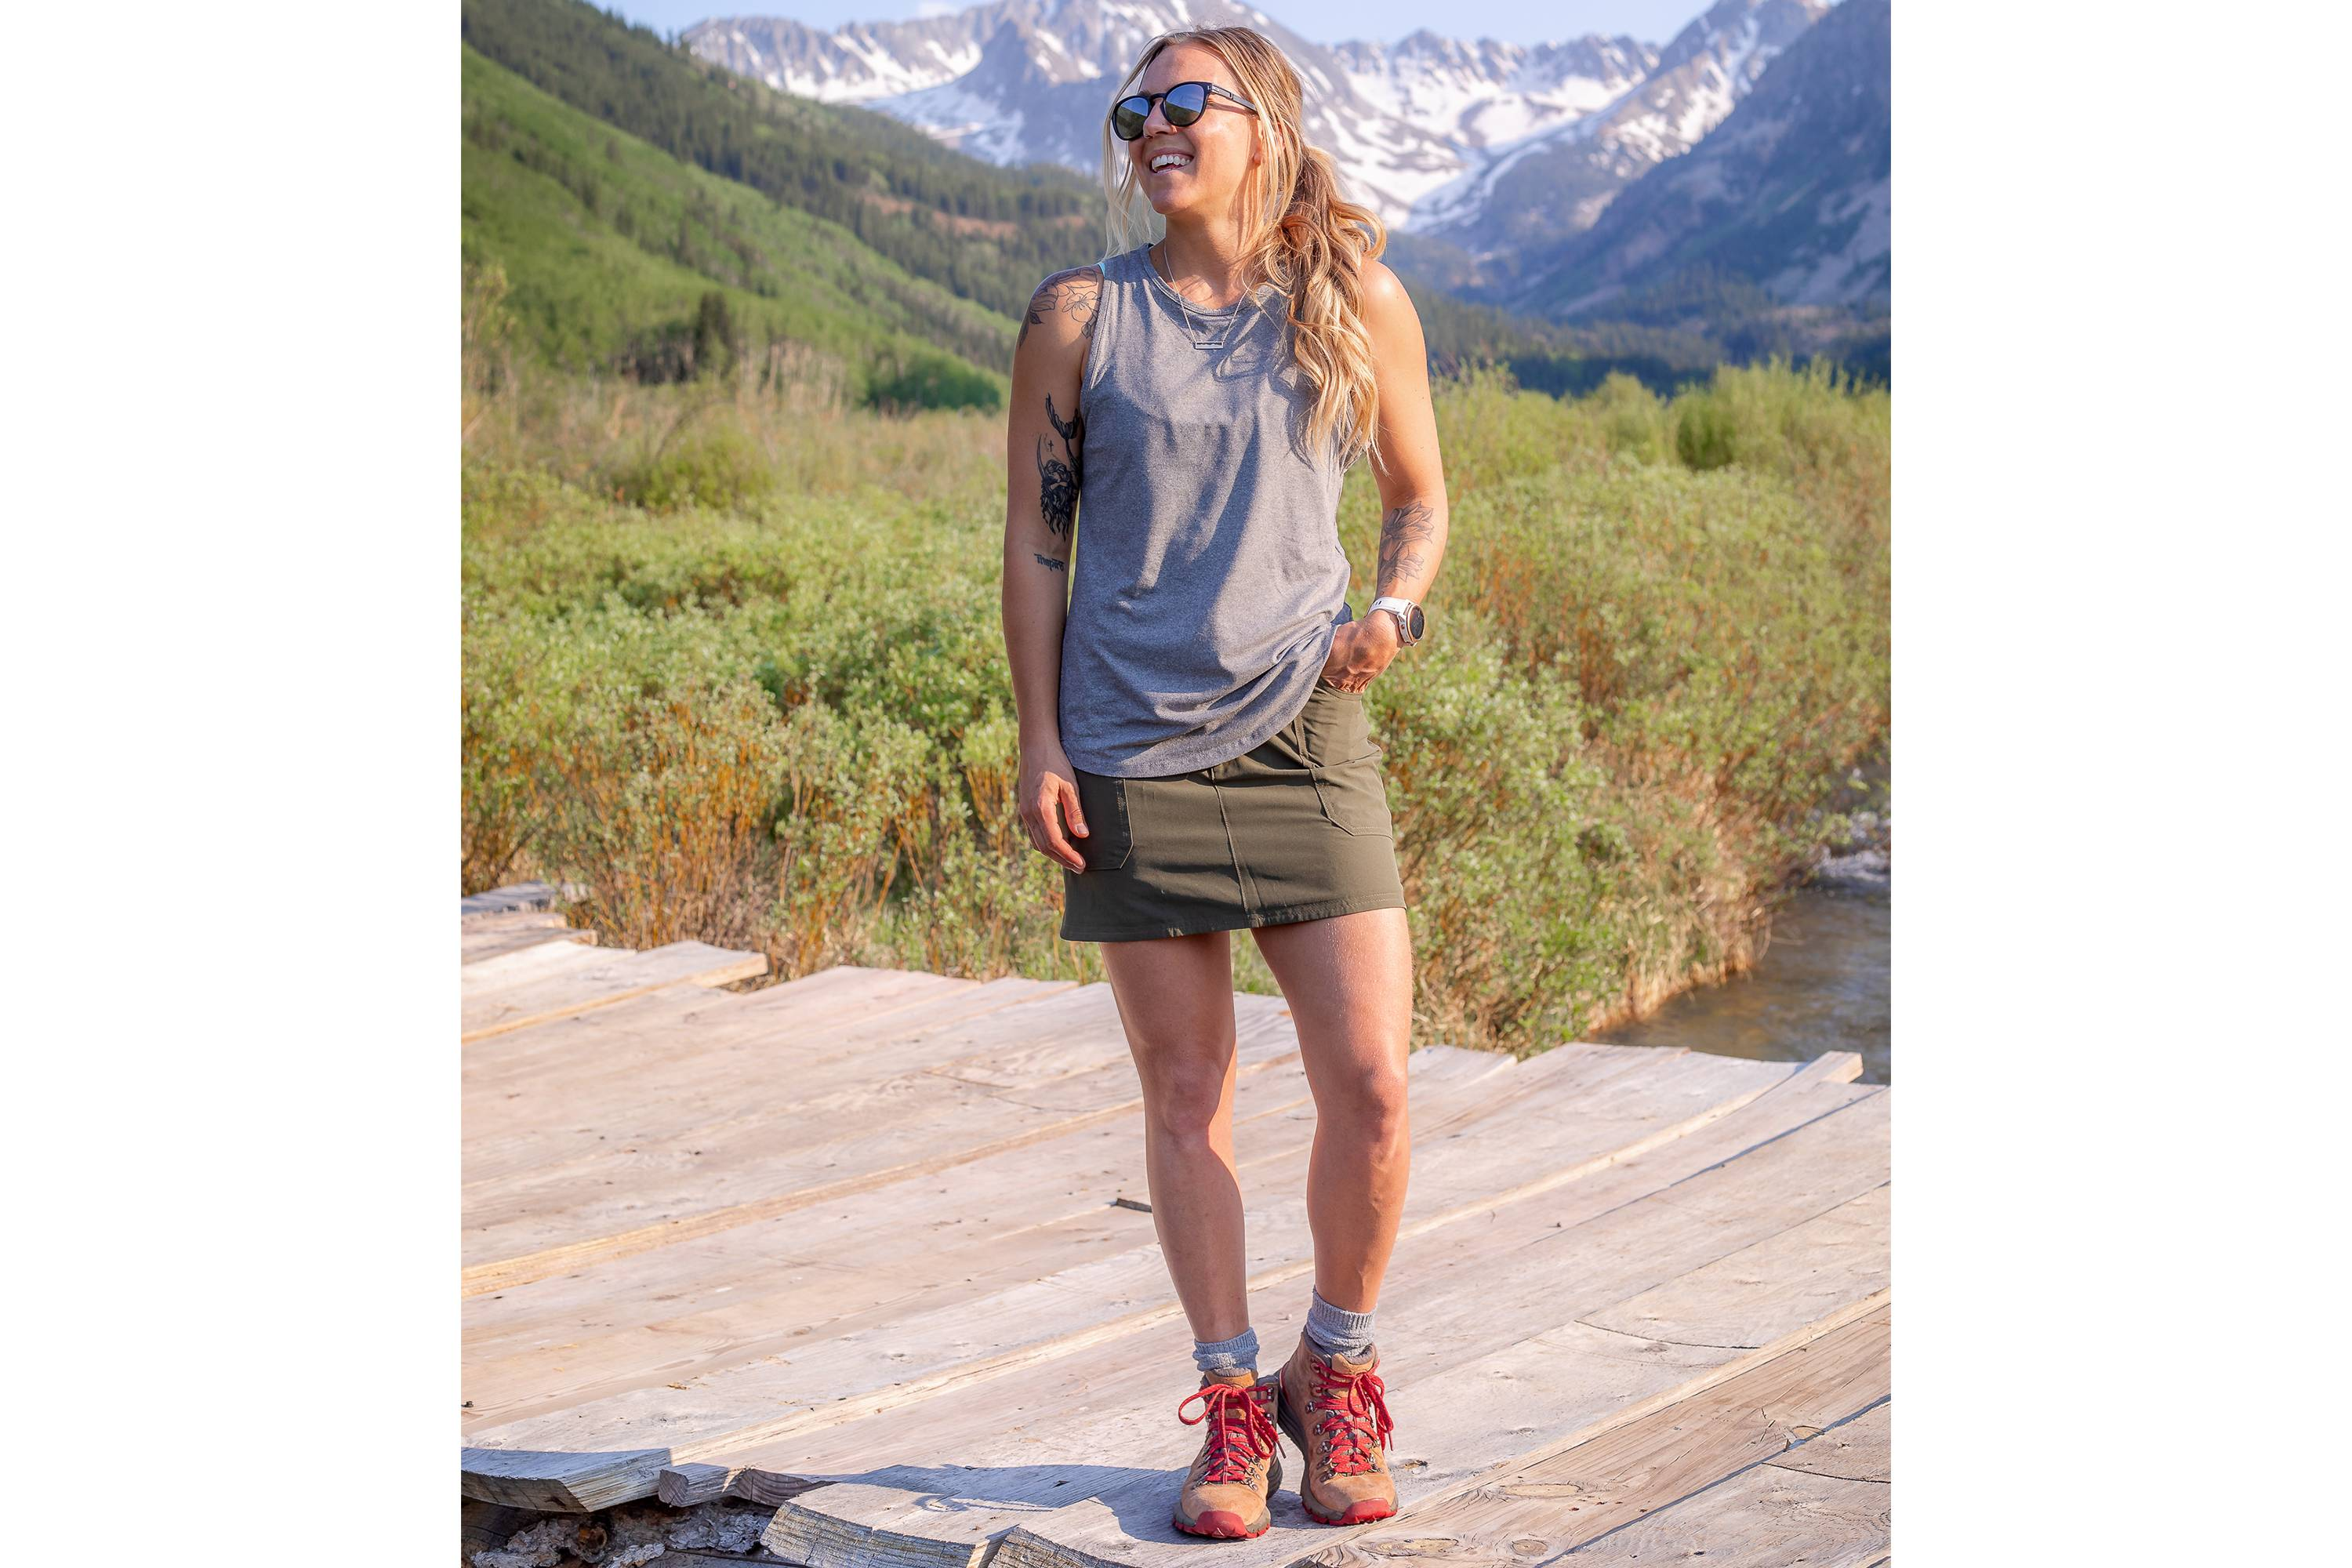 woman wearing wrangler skort standing outside in front of mountains